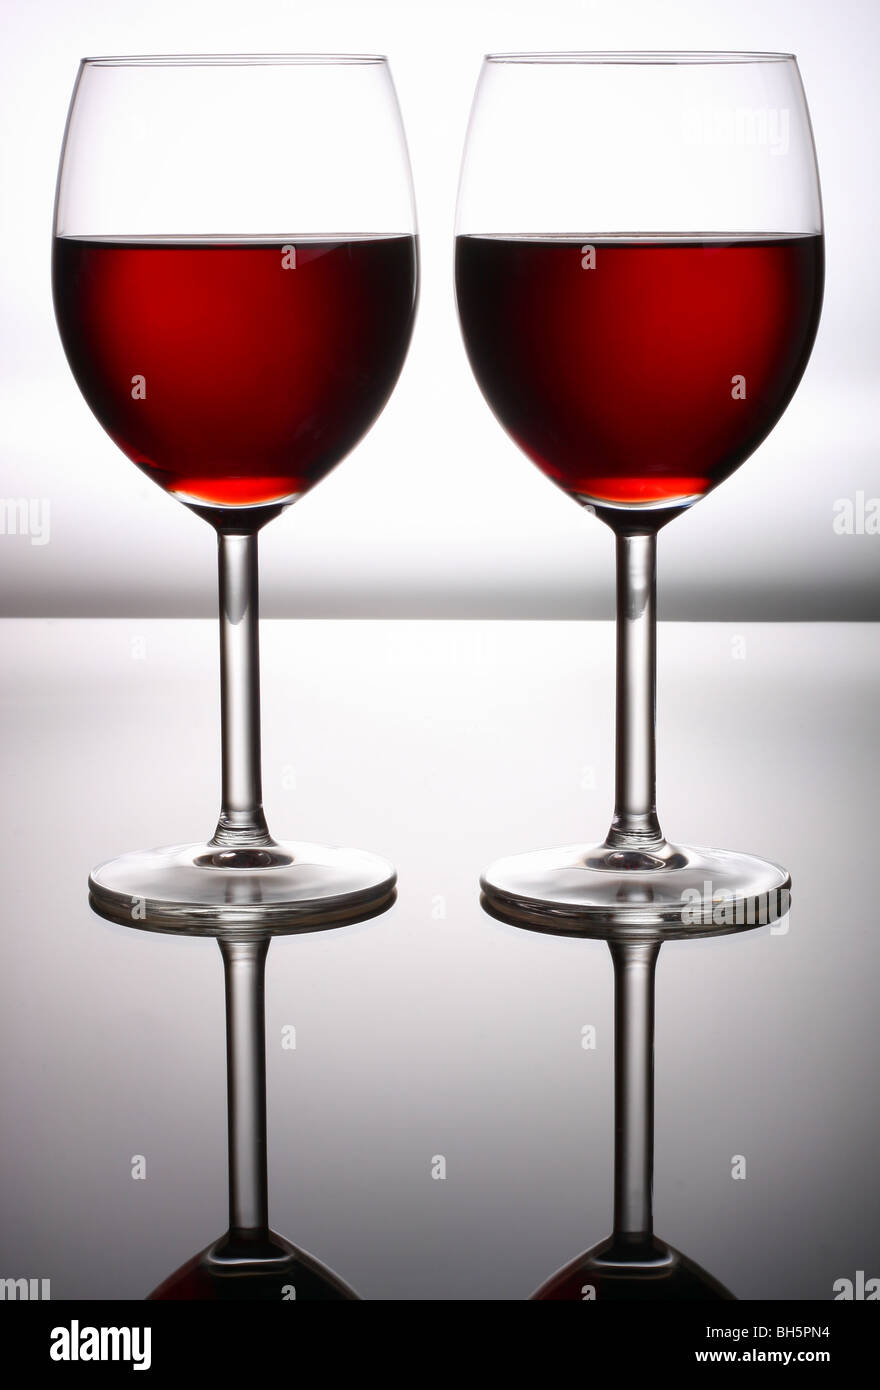 Red wine glass - Stock Image